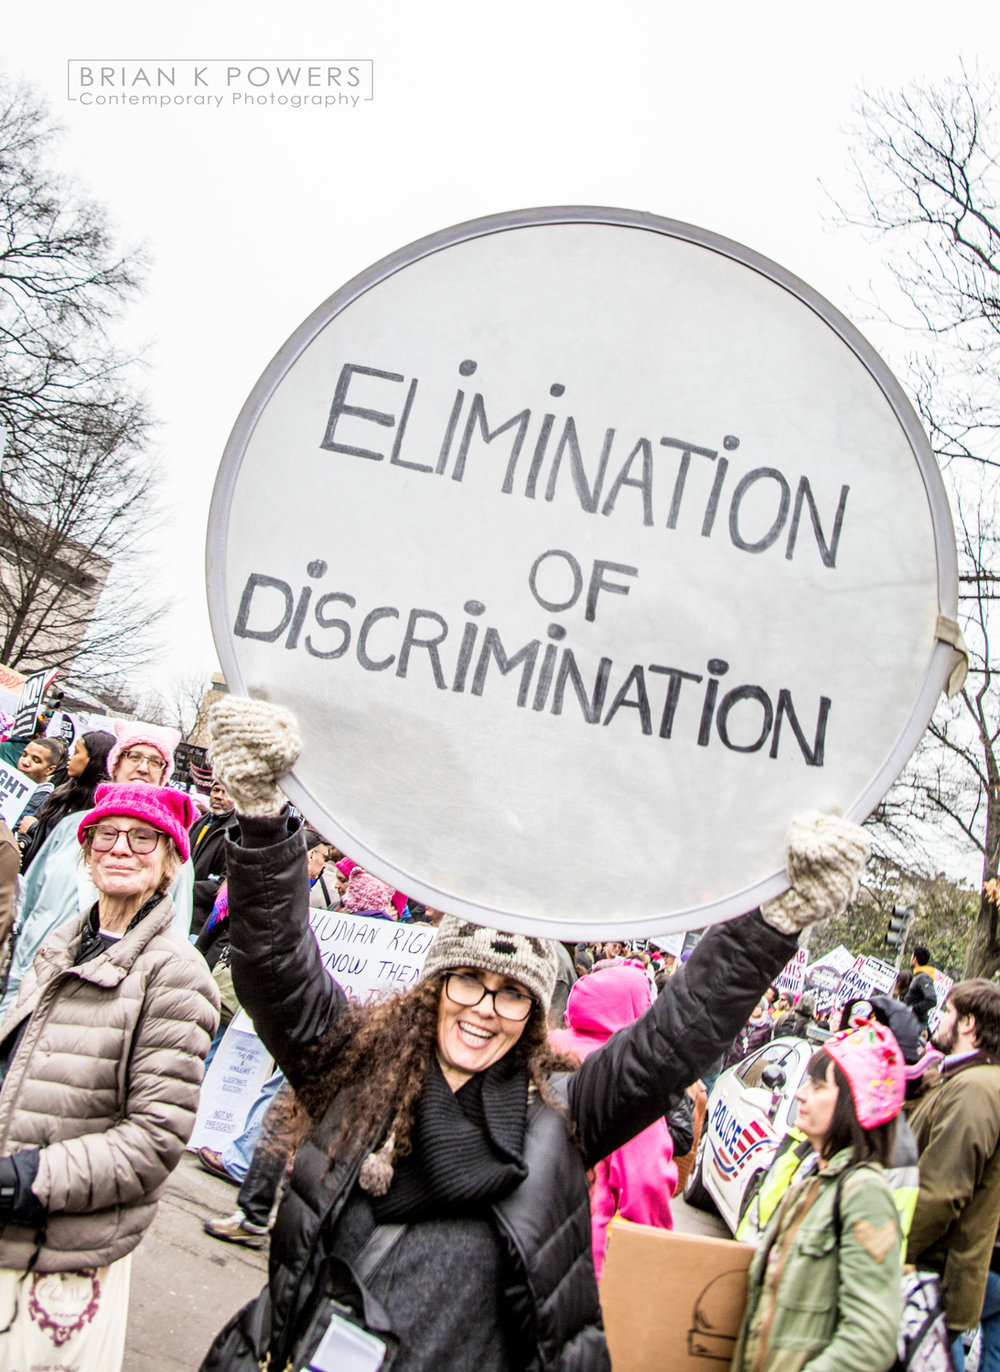 Womens-march-on-washington-2017-Brian-K-Powers-Photography-0121.jpg